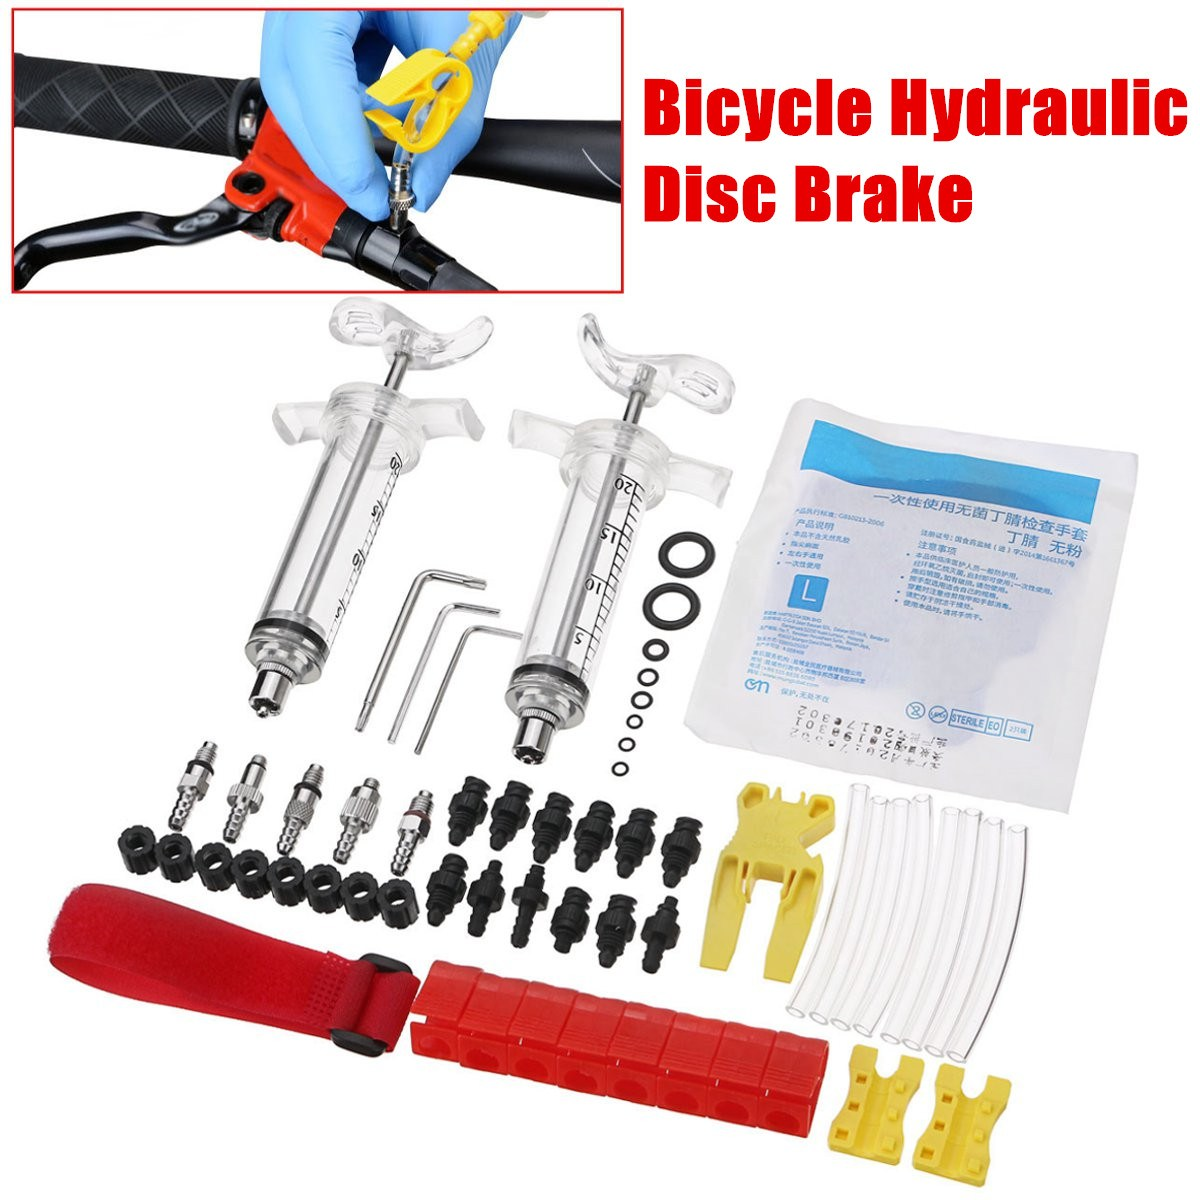 79 in 1 Bike Hydraulic Disc Brake Bleeding Tool Kit Bicycle Oiling Tool for Shimano for TEKTRO for MAGURA ZOOM FOR ECHO hydraulic knockout tool hydraulic hole macking tool hydraulic punch tool syk 15 with the die range from 63mm to 114mm